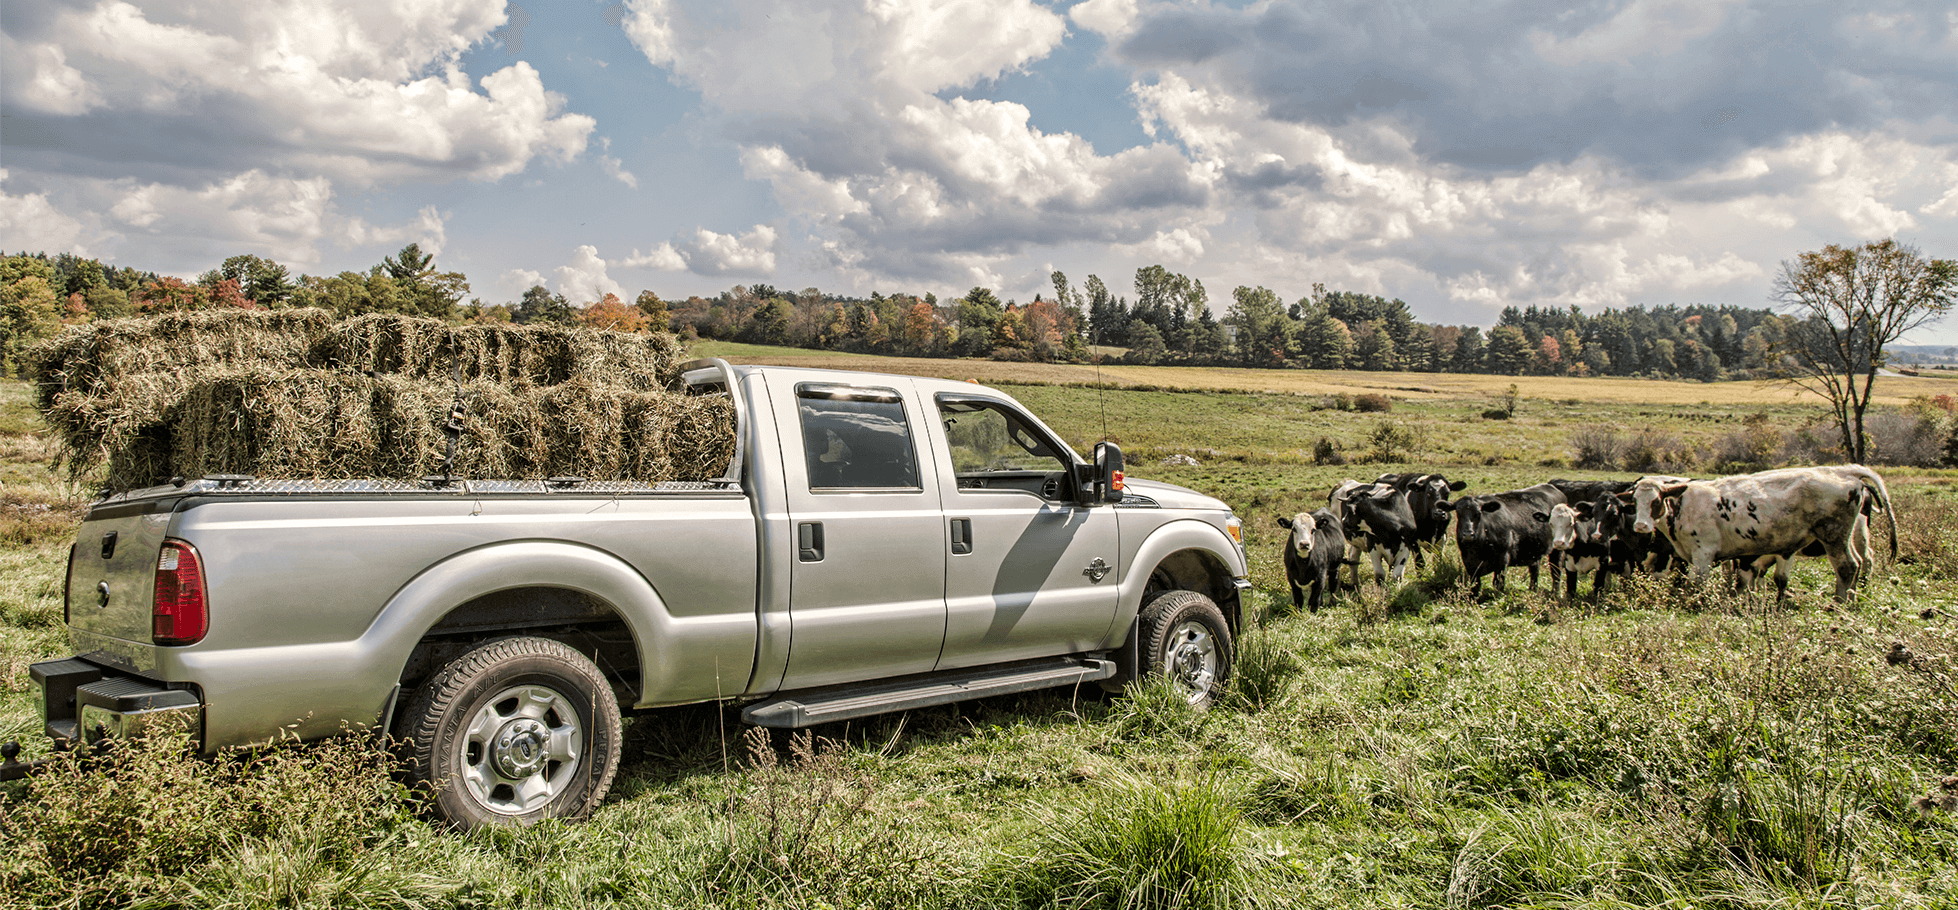 HD diamond plate bed cover on ford super duty farming